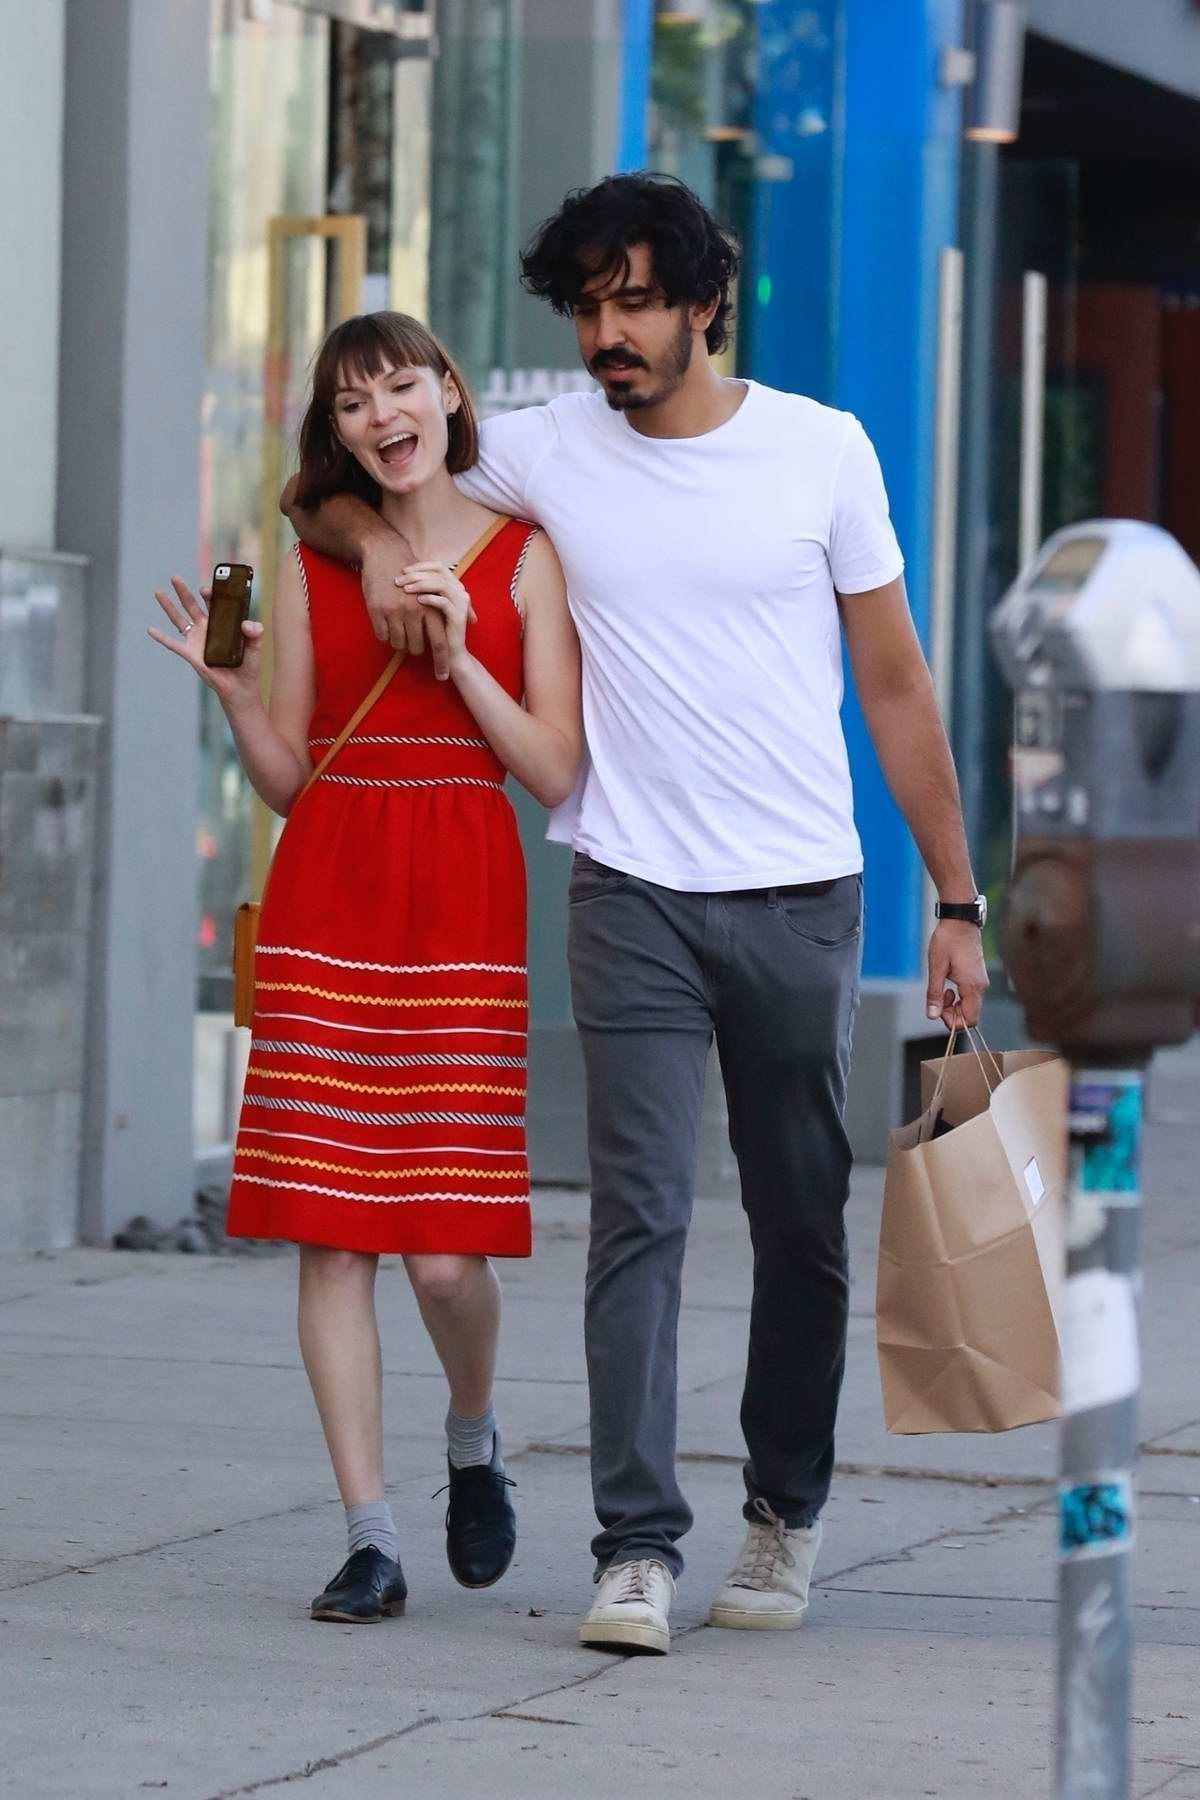 Tilda Cobham-Hervey and Dev Patel out for some holiday shopping in Los Angeles